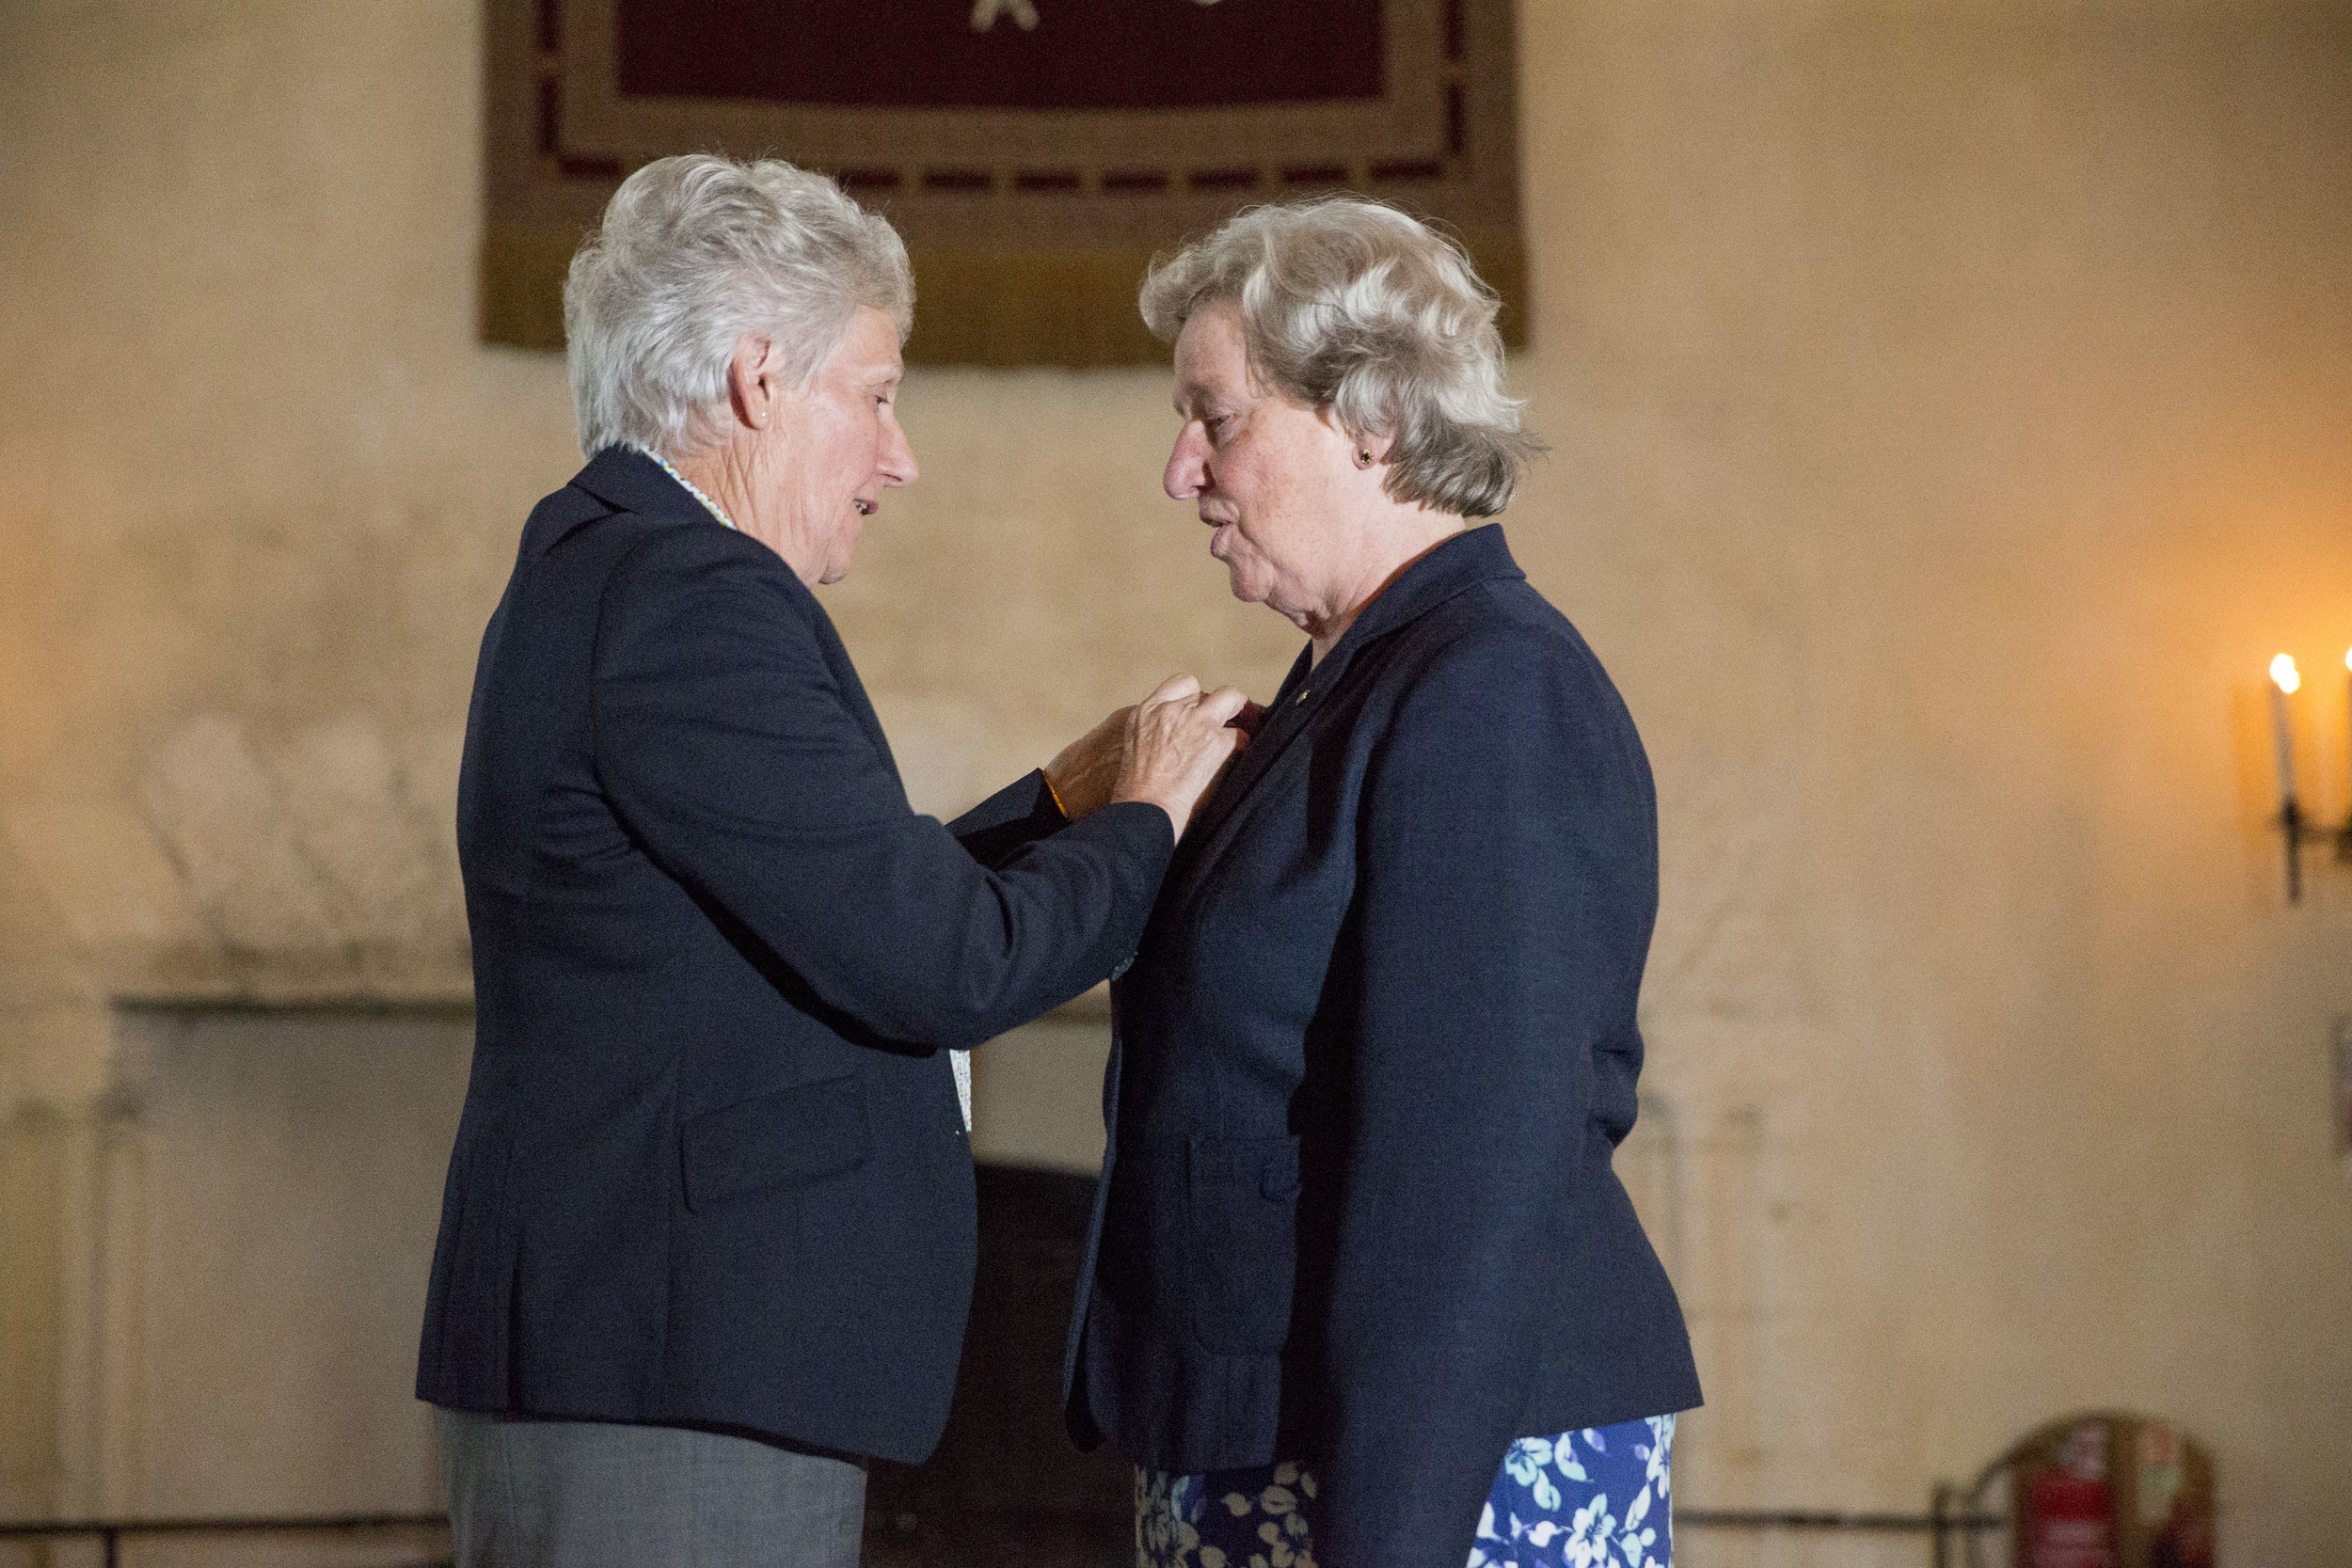 Joan receiving the CGF order of Merit from Louise Martin CBE, President of CGF